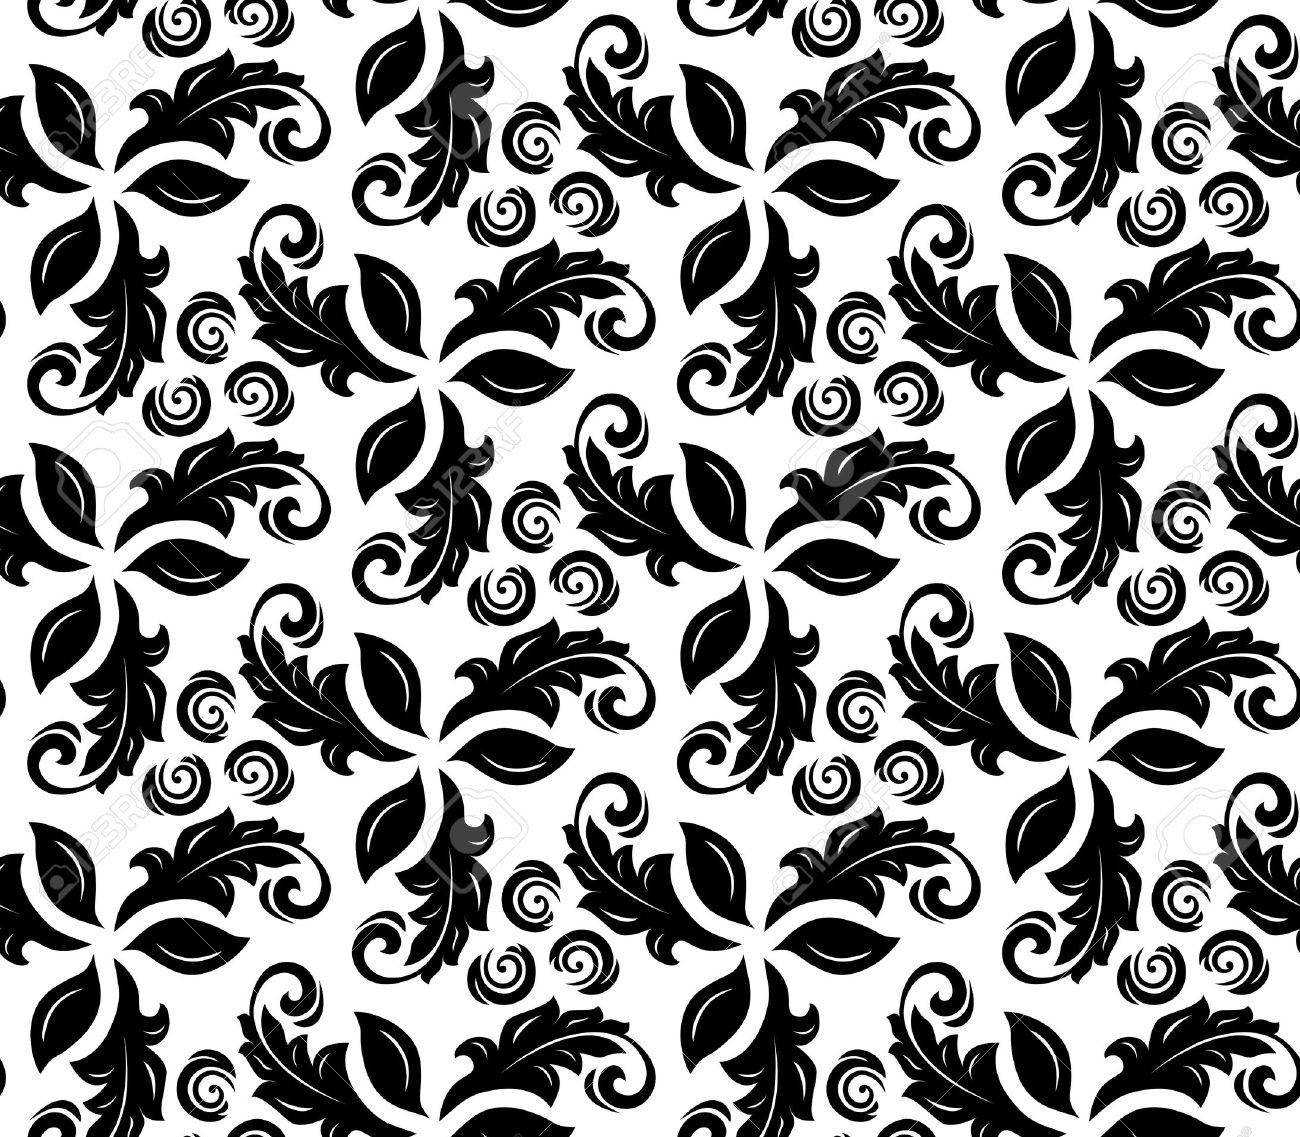 Floral Vector Black And White Ornament Seamless Abstract Background